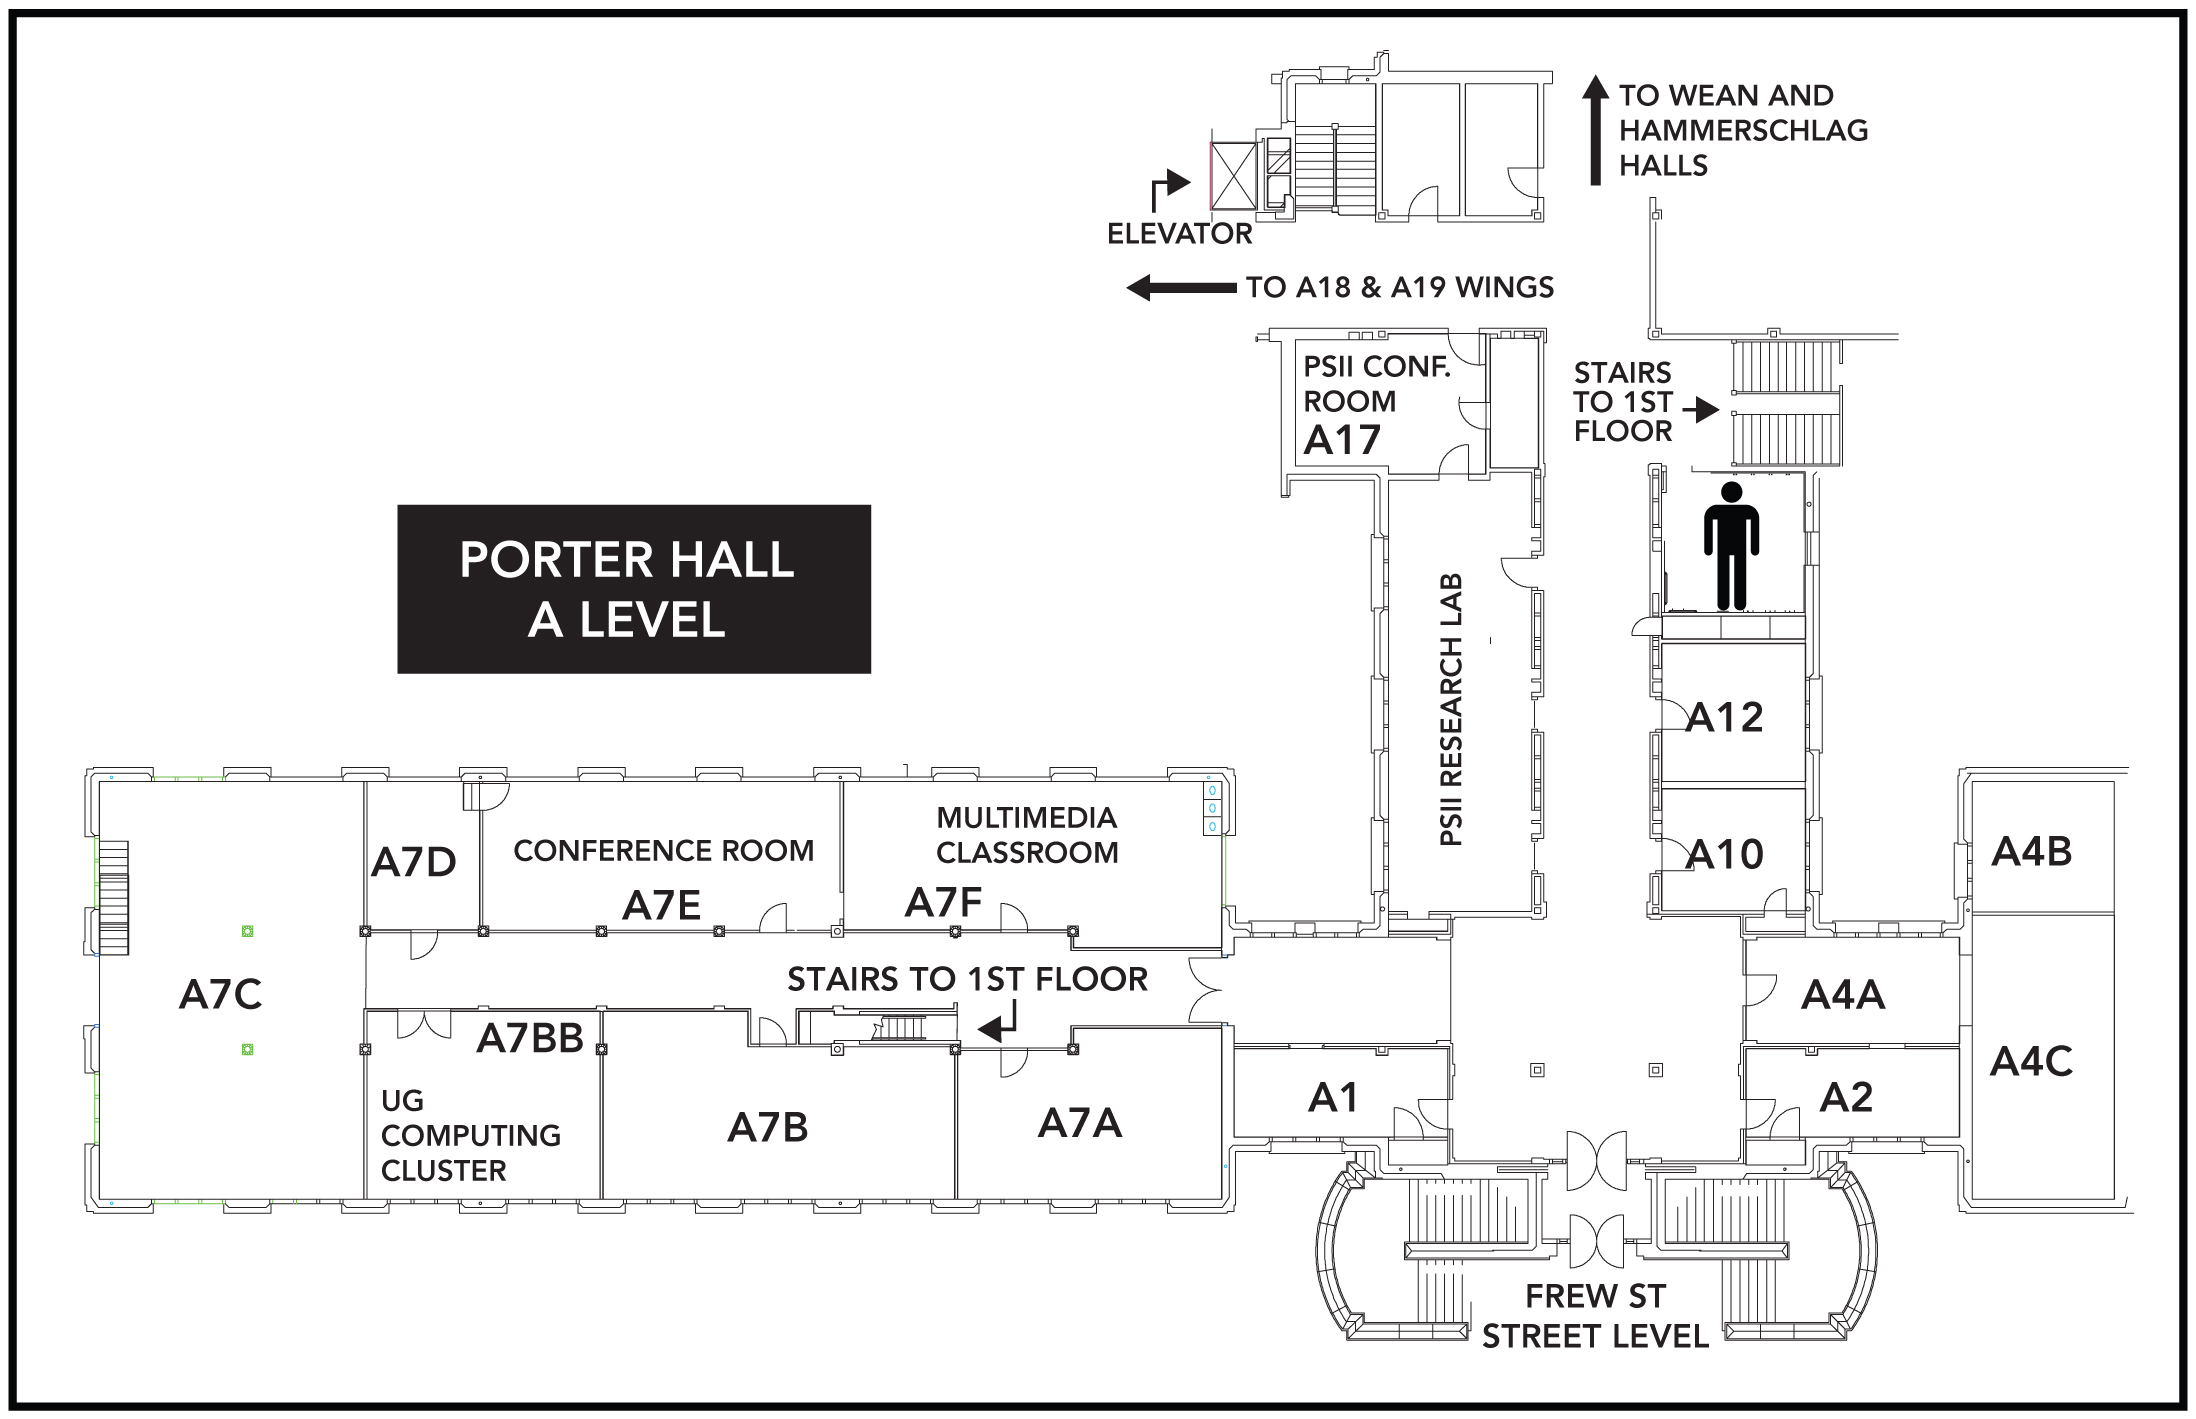 Floor Plan Requirements Cee Building Maps Civil And Environmental Engineering